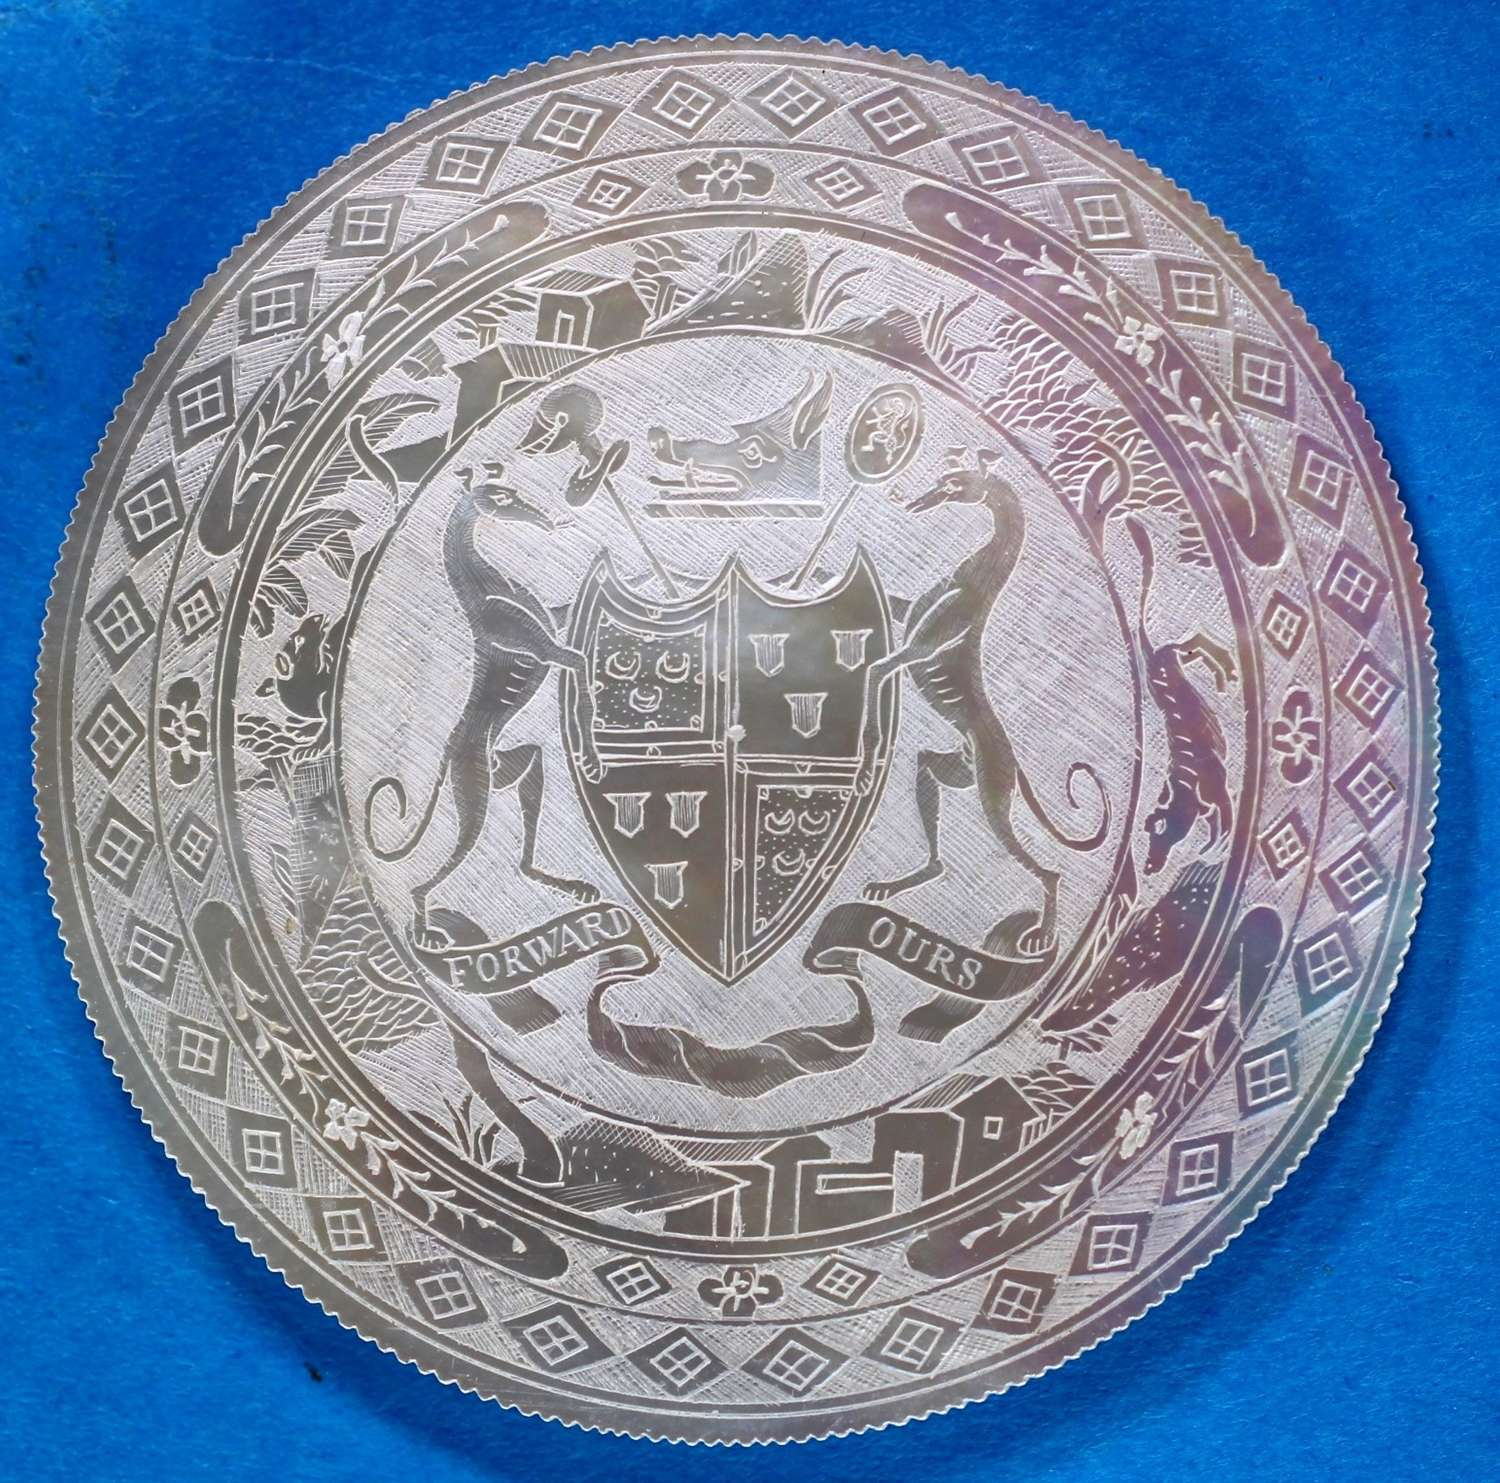 Superb armorial for Lord SETON of TOUCH